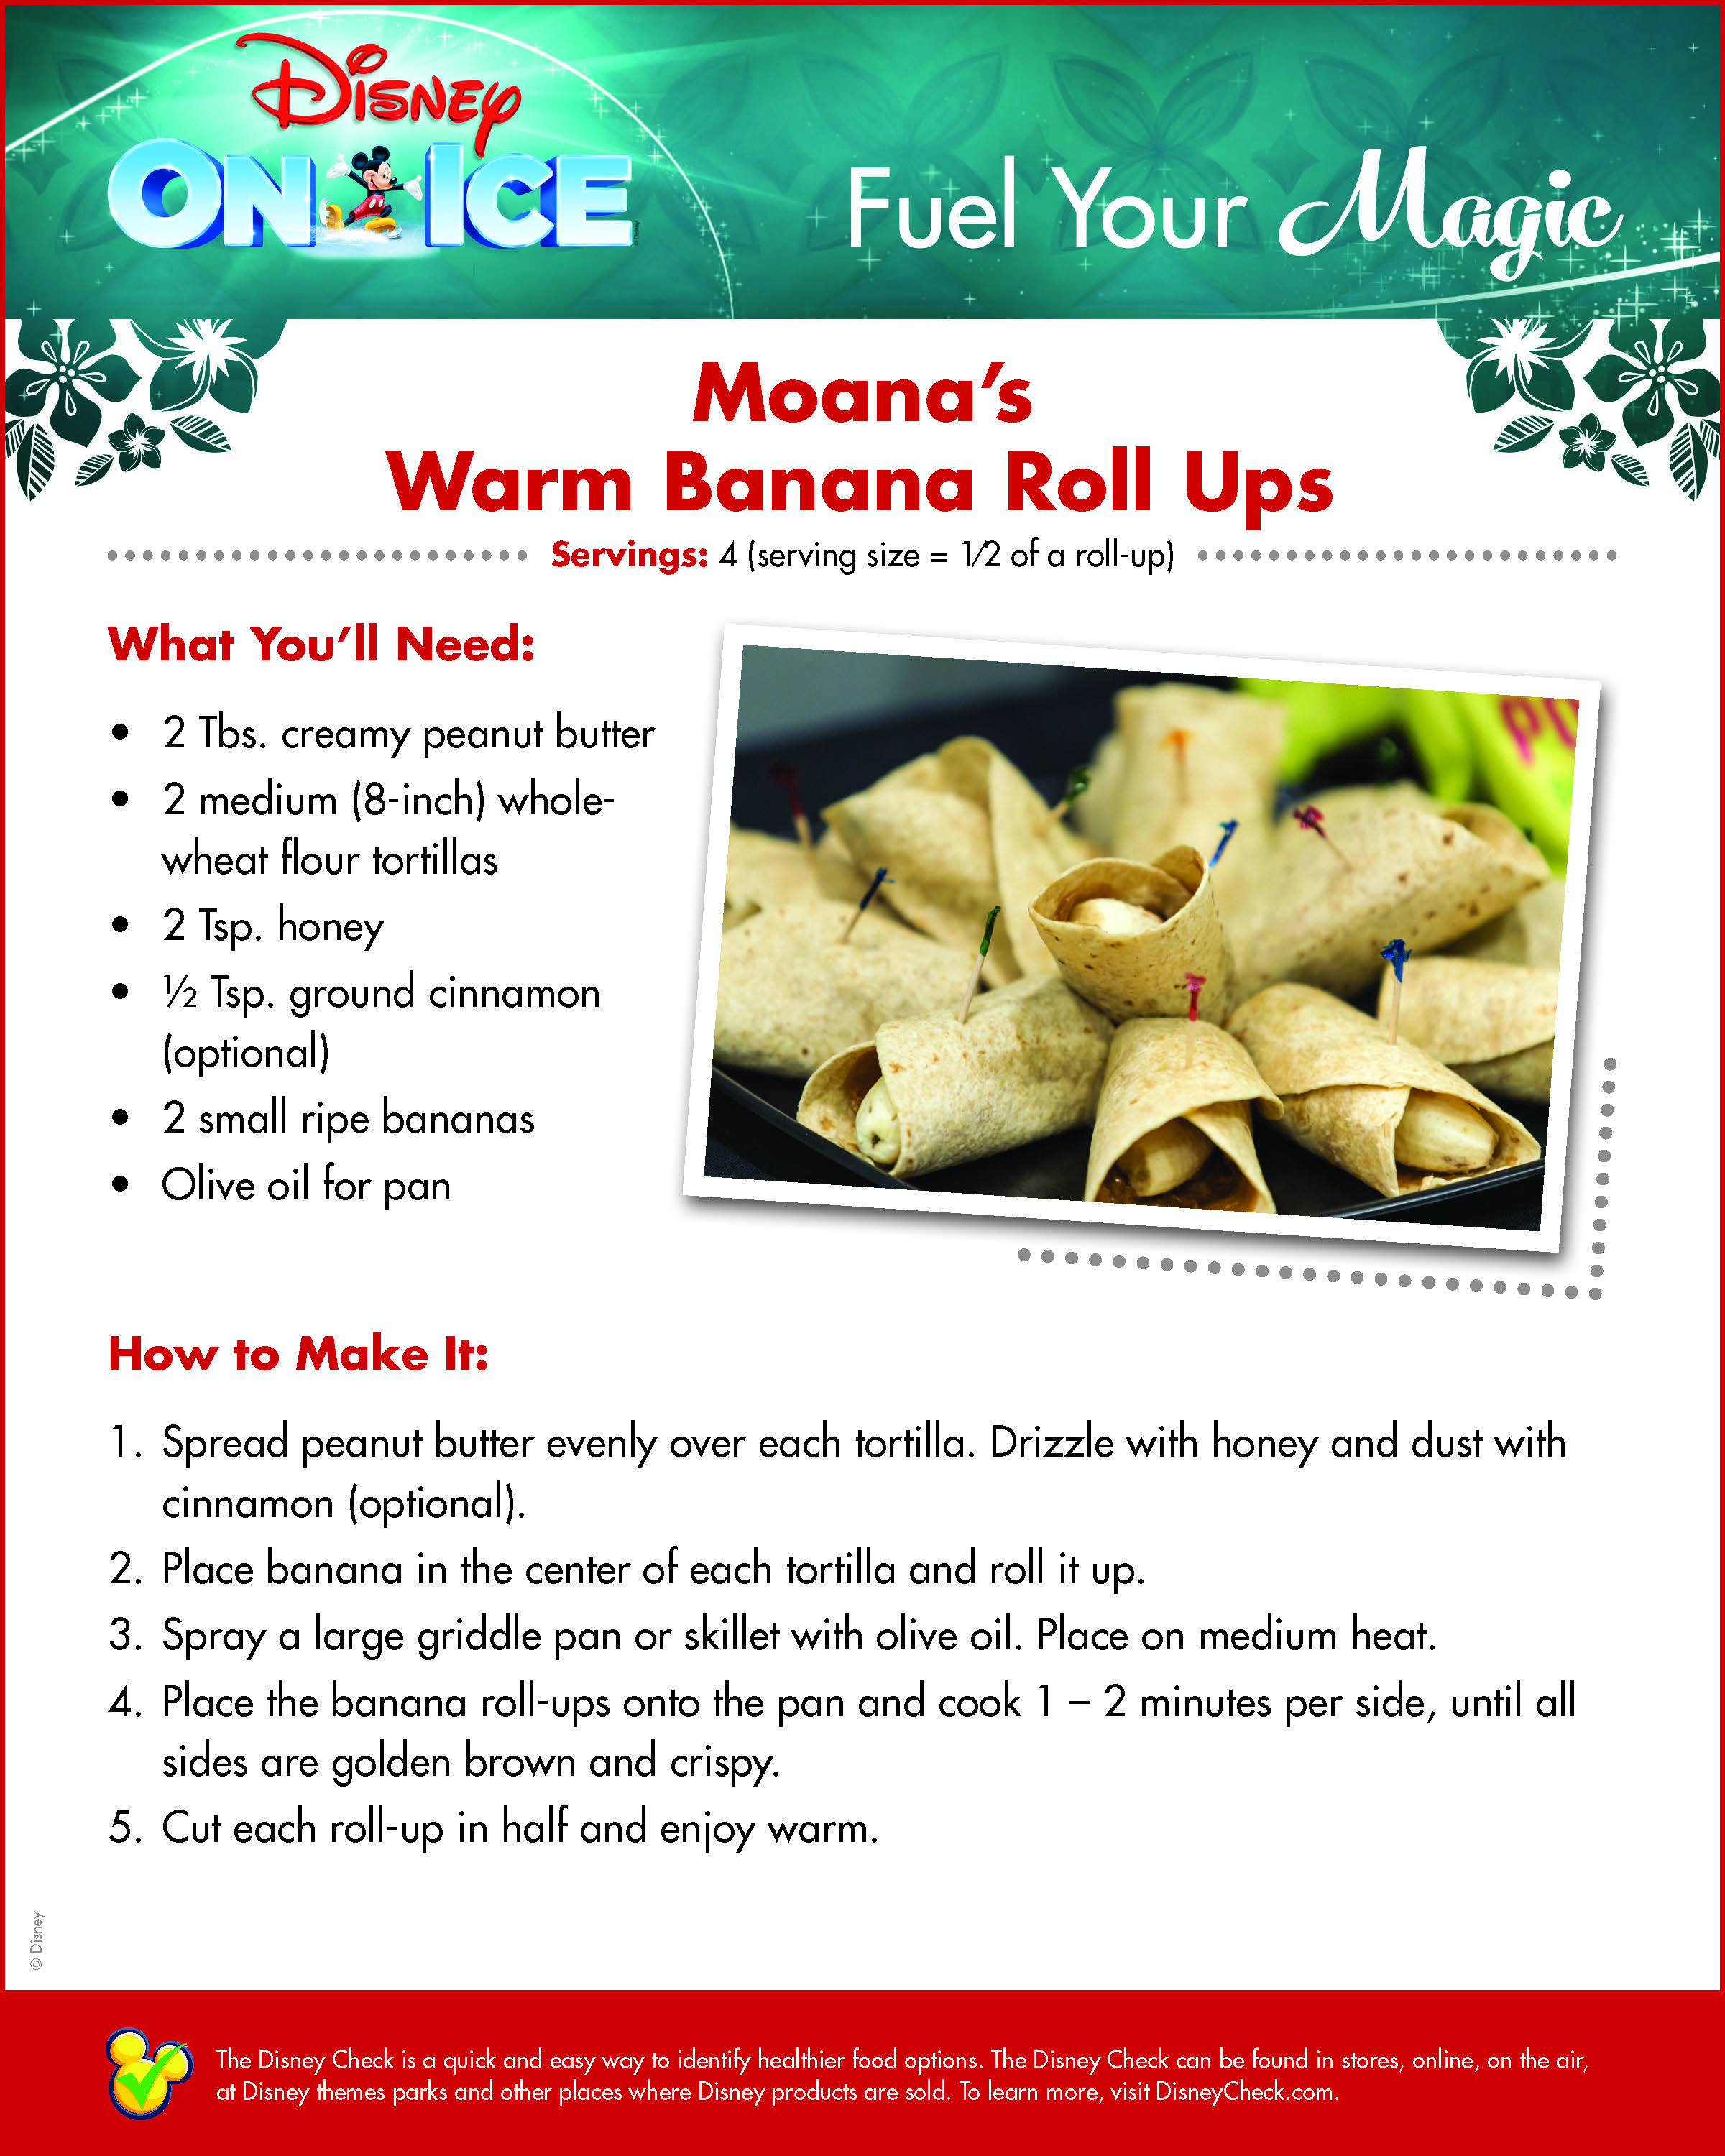 Moana's Warm Banana Roll Ups